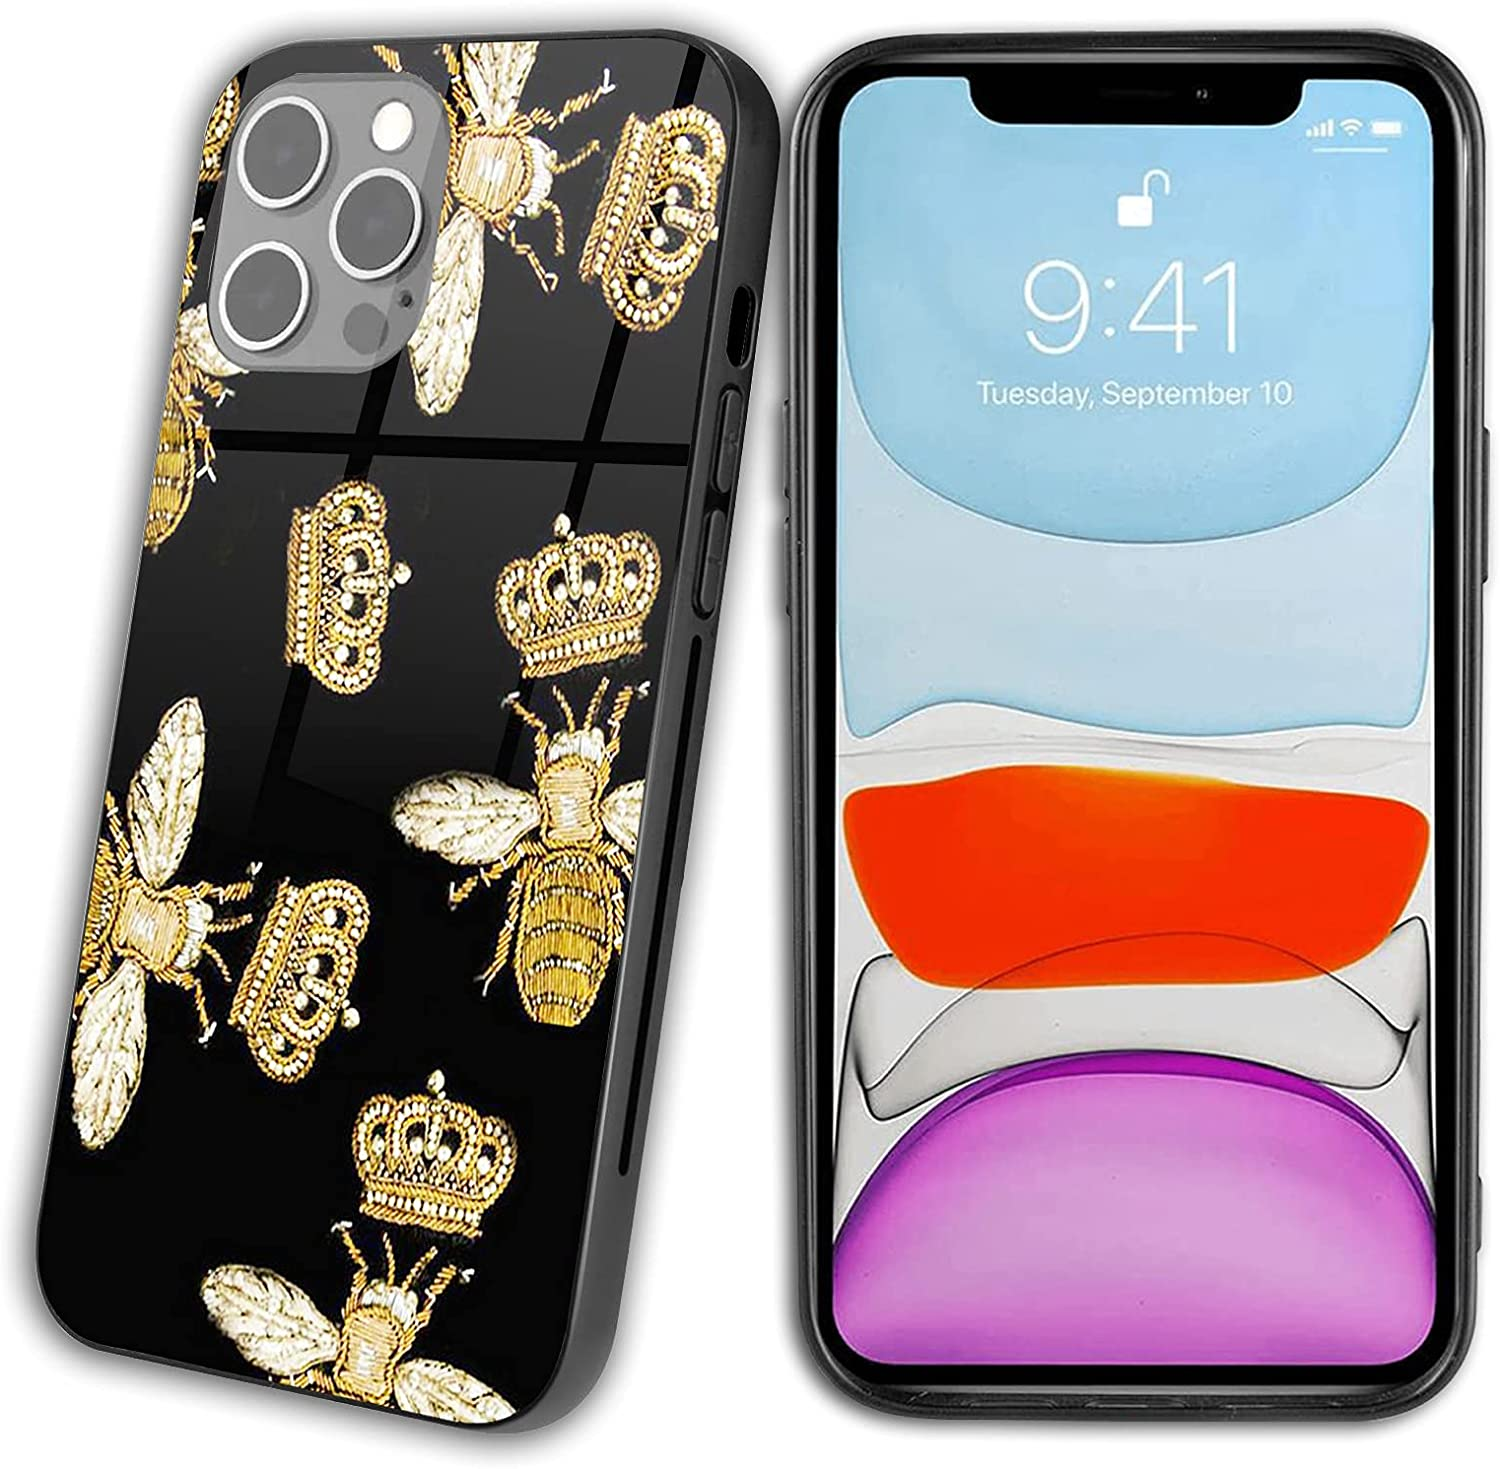 iPhone 12 Case,Queen Bee Crown Honeybee Golden Crown Jewelry Gold Bee Pattern Art Tempered Glass iPhone 12 Cases for Women,Pattern Design Shockproof Anti-Scratch Case for iPhone 12 6.1in Bee Crown